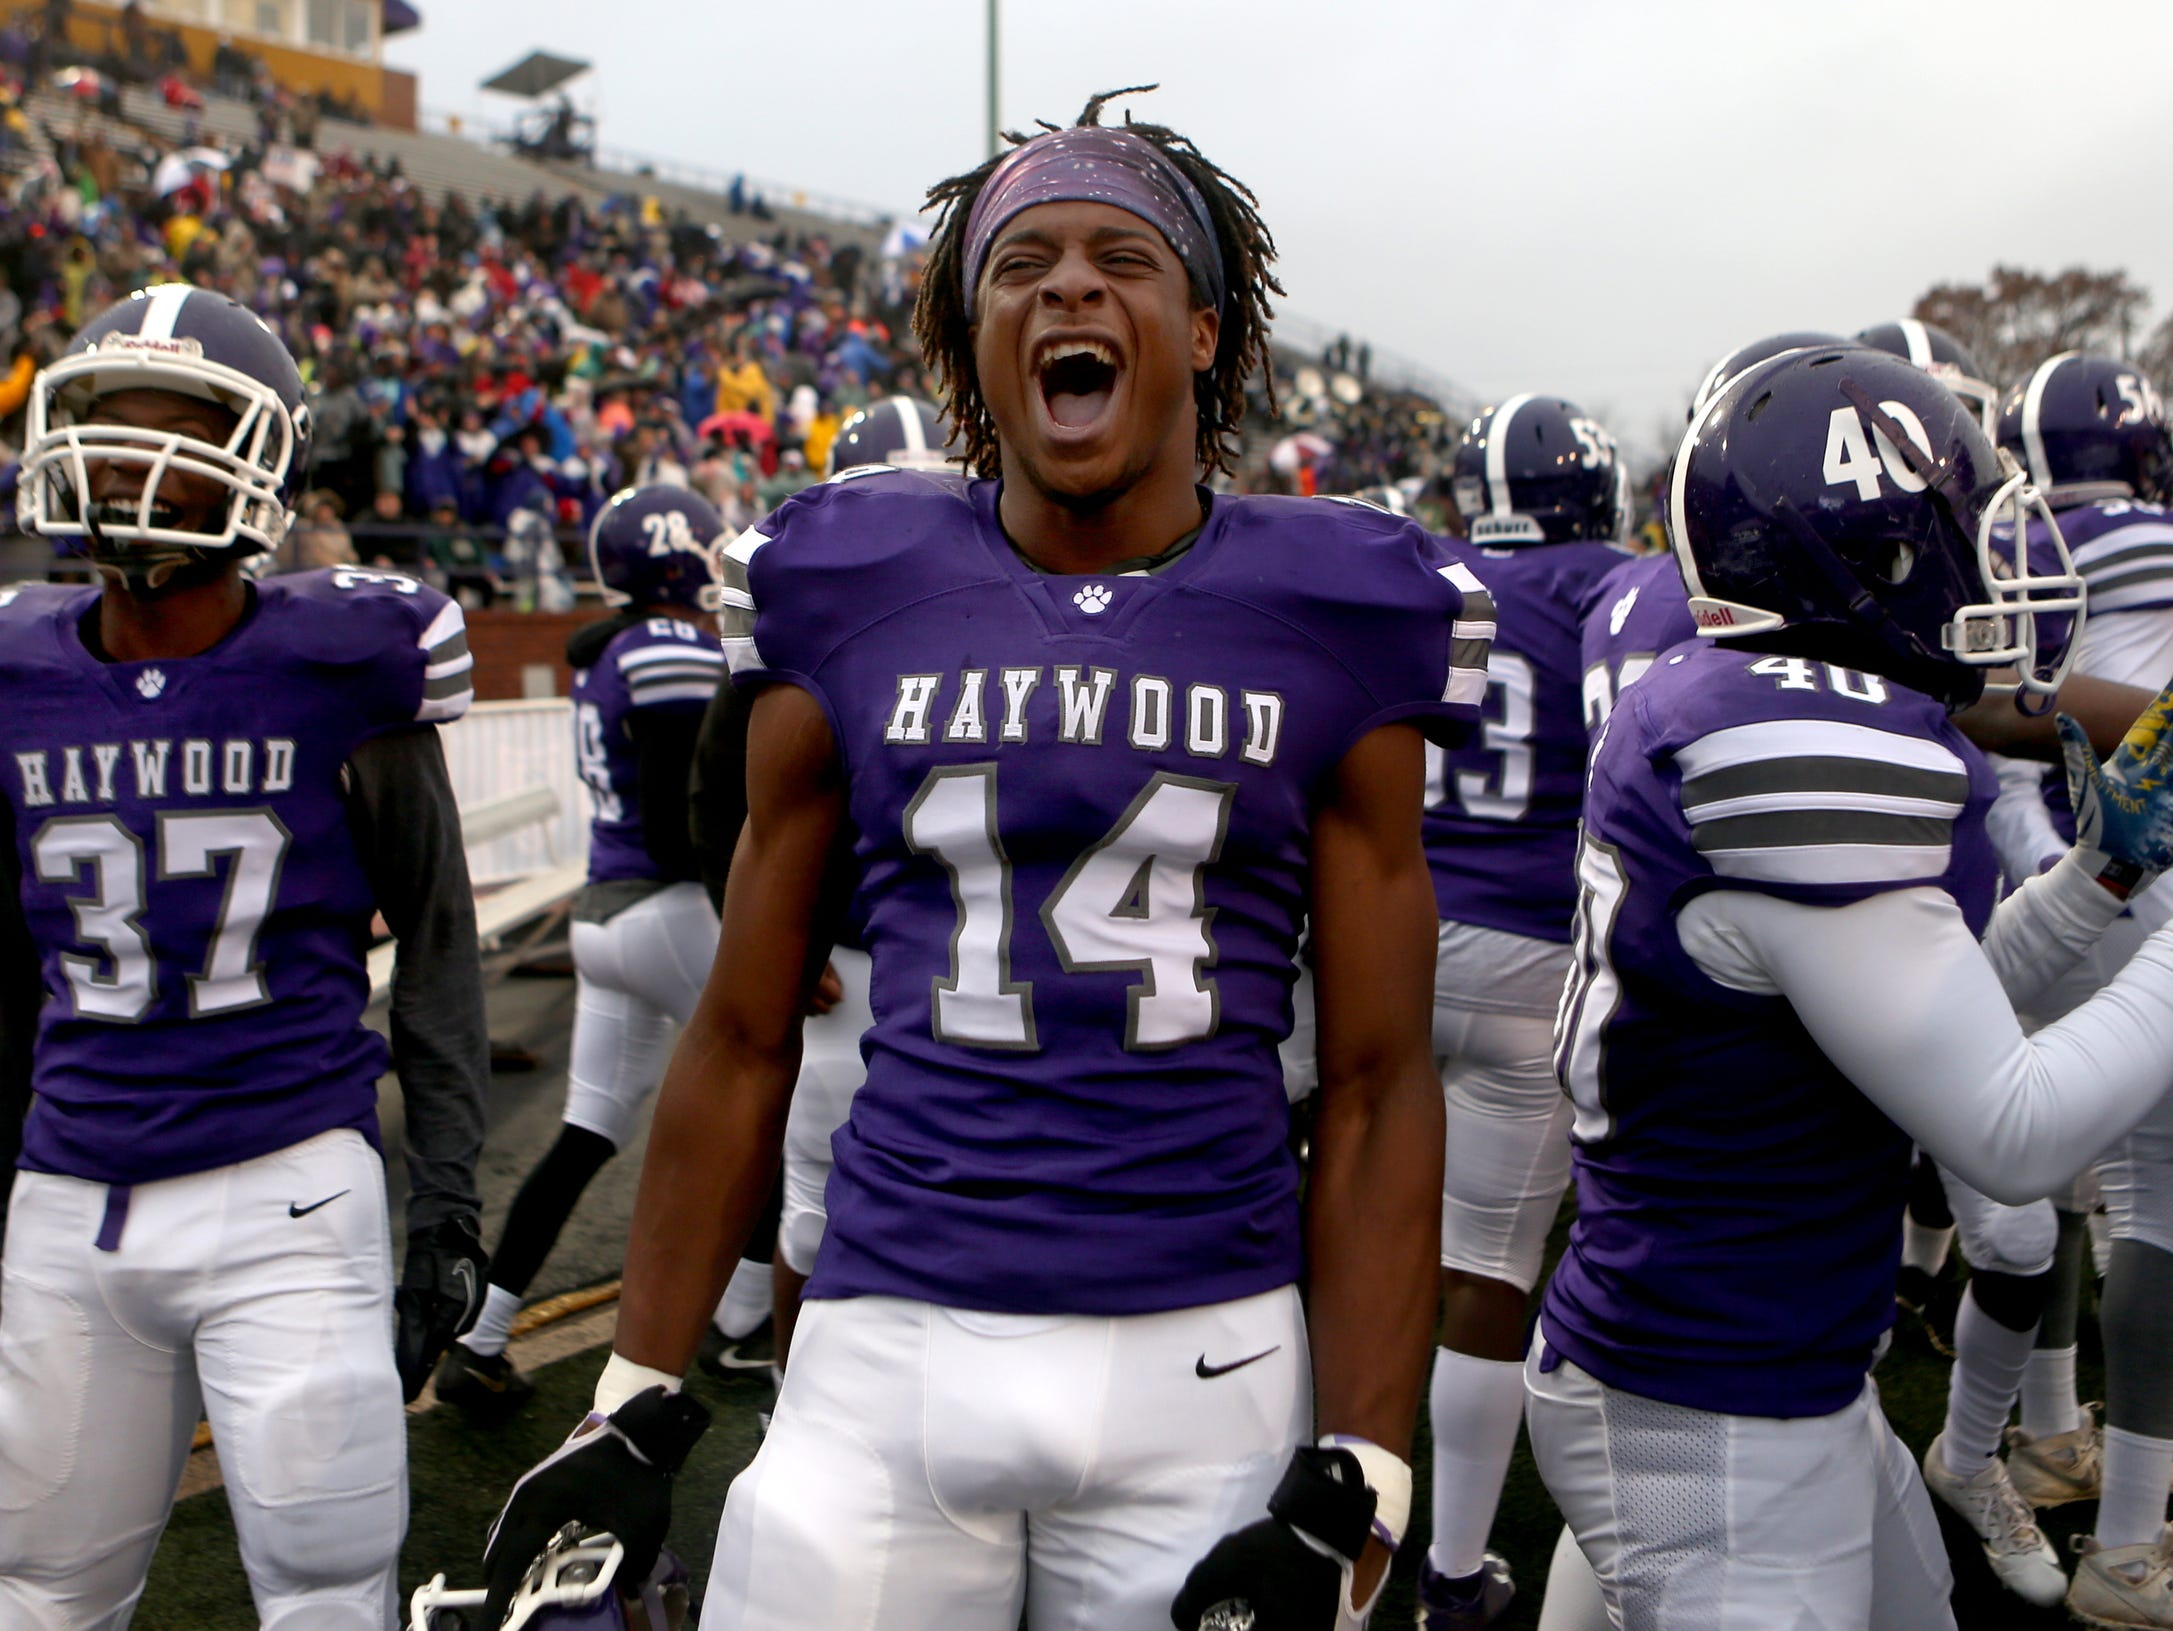 Haywood's  Devin Miller (37), Haywood's  Calen Johnson (14) and Haywood's Trondarius Rutherford (40) all cheer on the sidelines during the Class 4A BlueCross Bowl state championship against Greeneville on Thursday, Nov. 29, 2018, at Tennessee Tech's Tucker Stadium in Cookeville, Tenn.